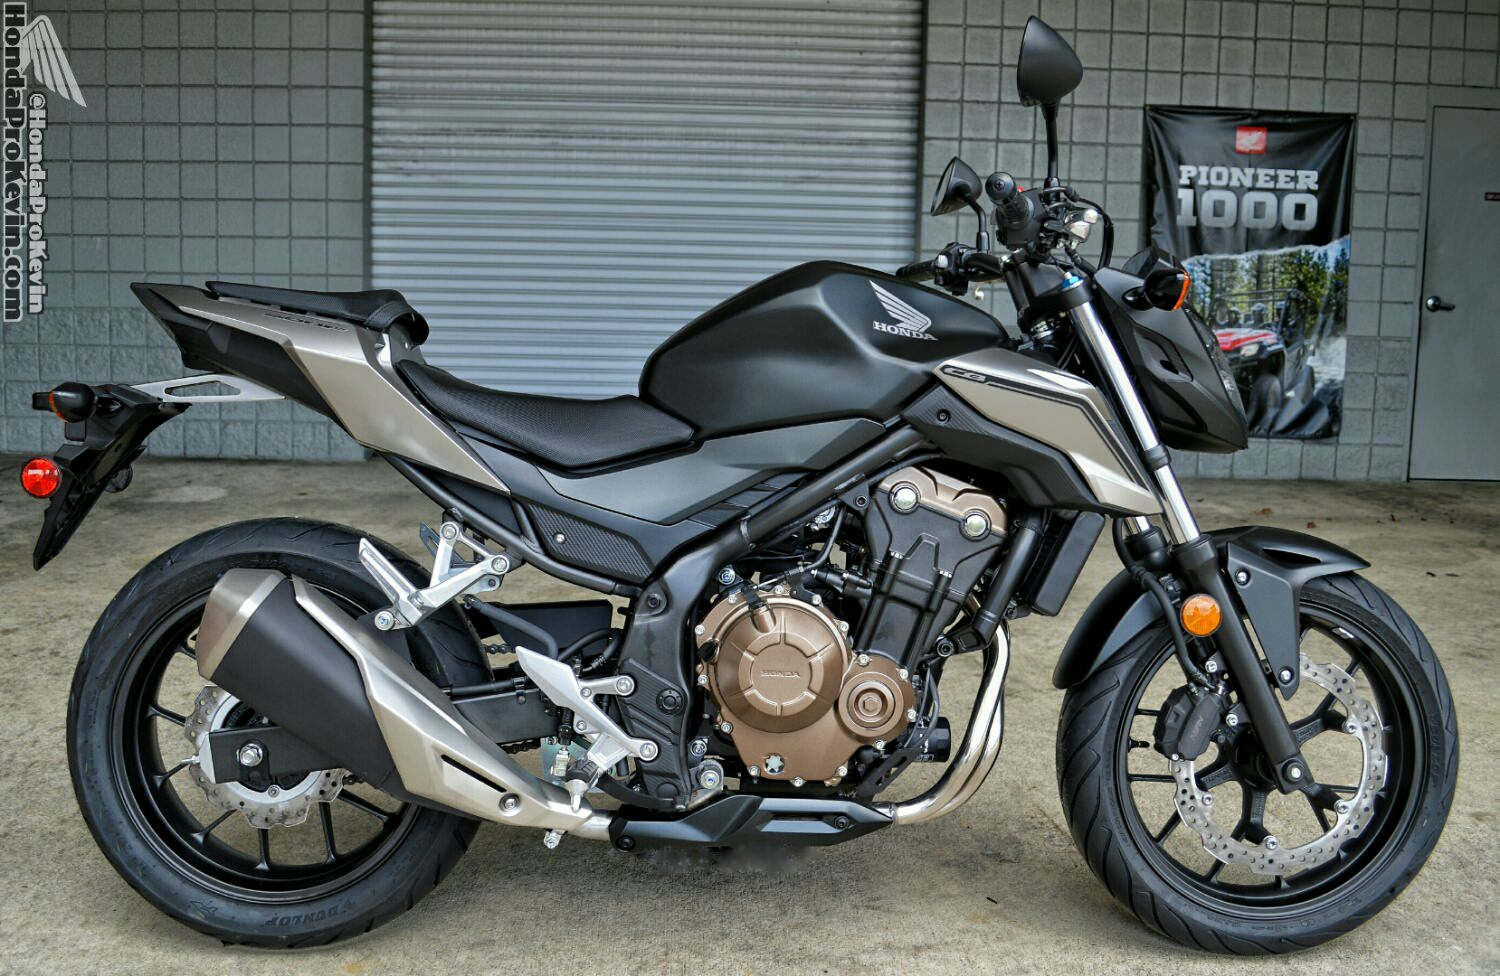 hight resolution of the 2016 cb500f is a bold evolution that elevates the machine still further with a shot of naked streetfight style and rider focussed upgrades that add